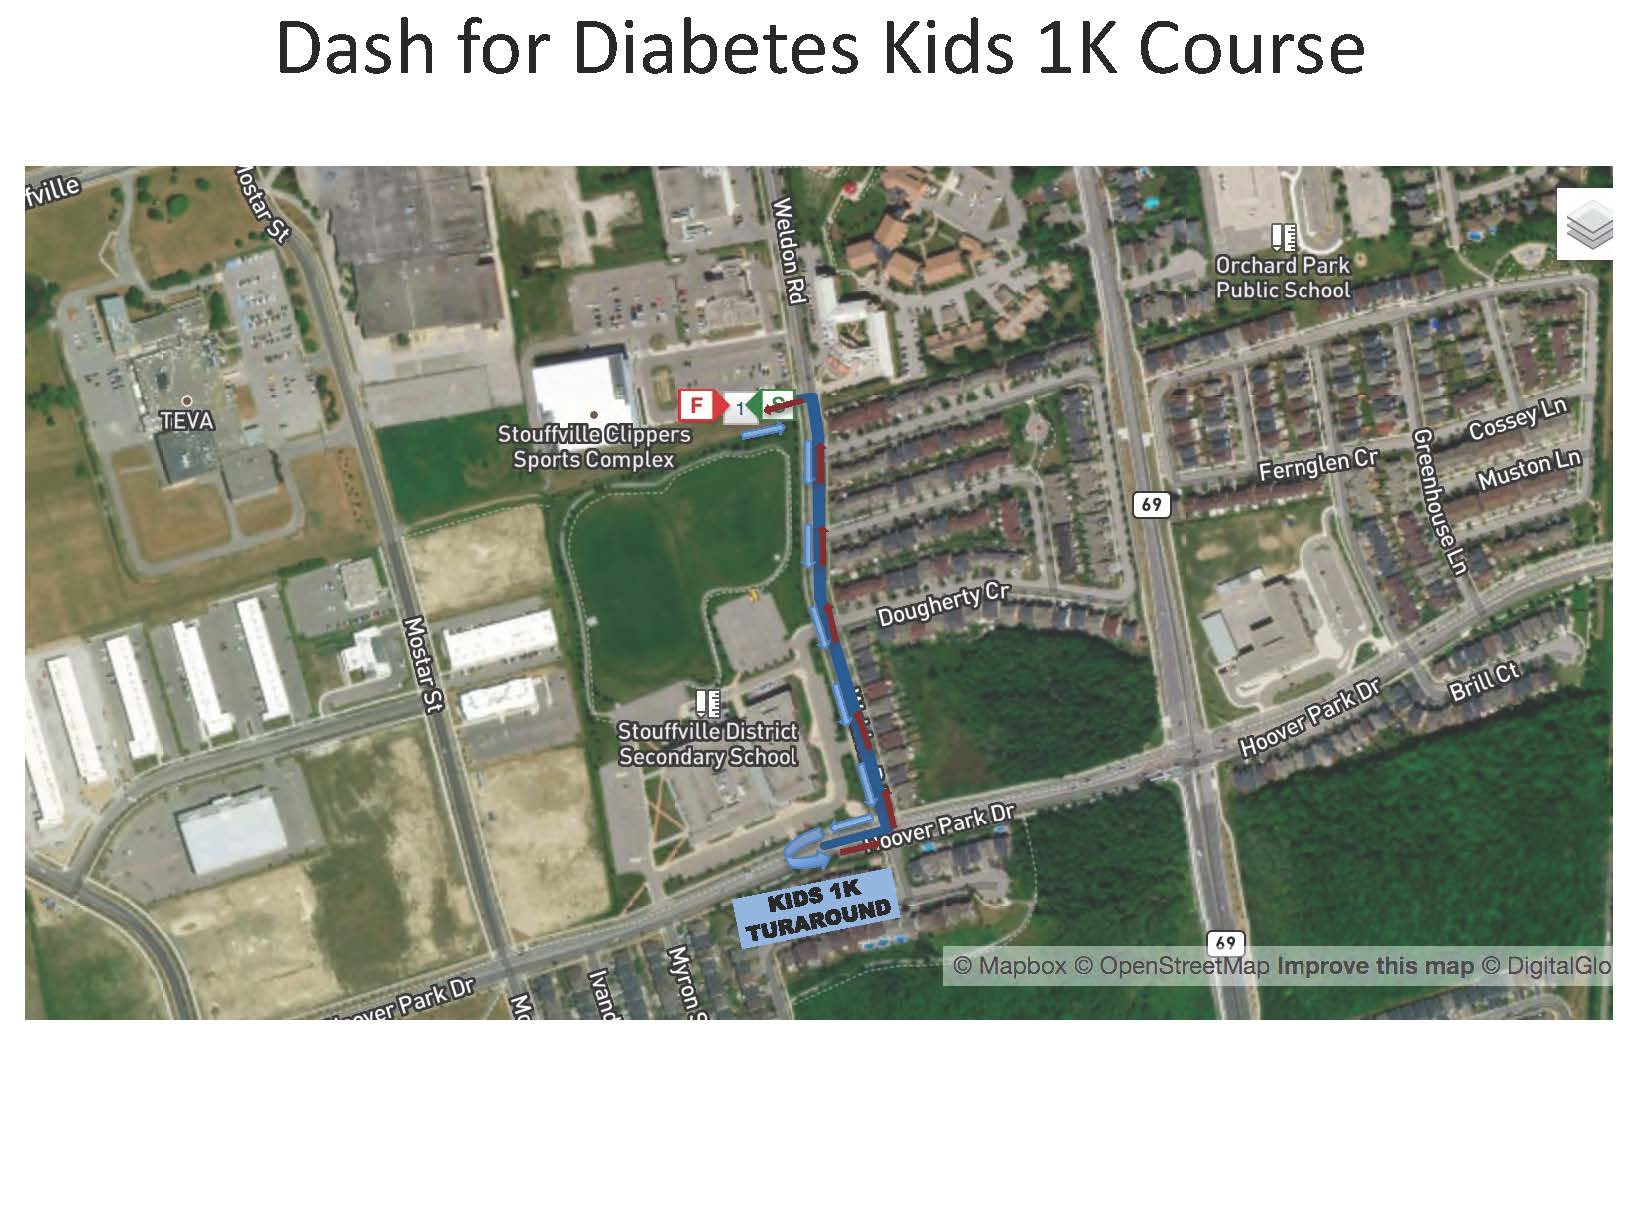 2019 Dashfor Diabetes Kids1 KMap